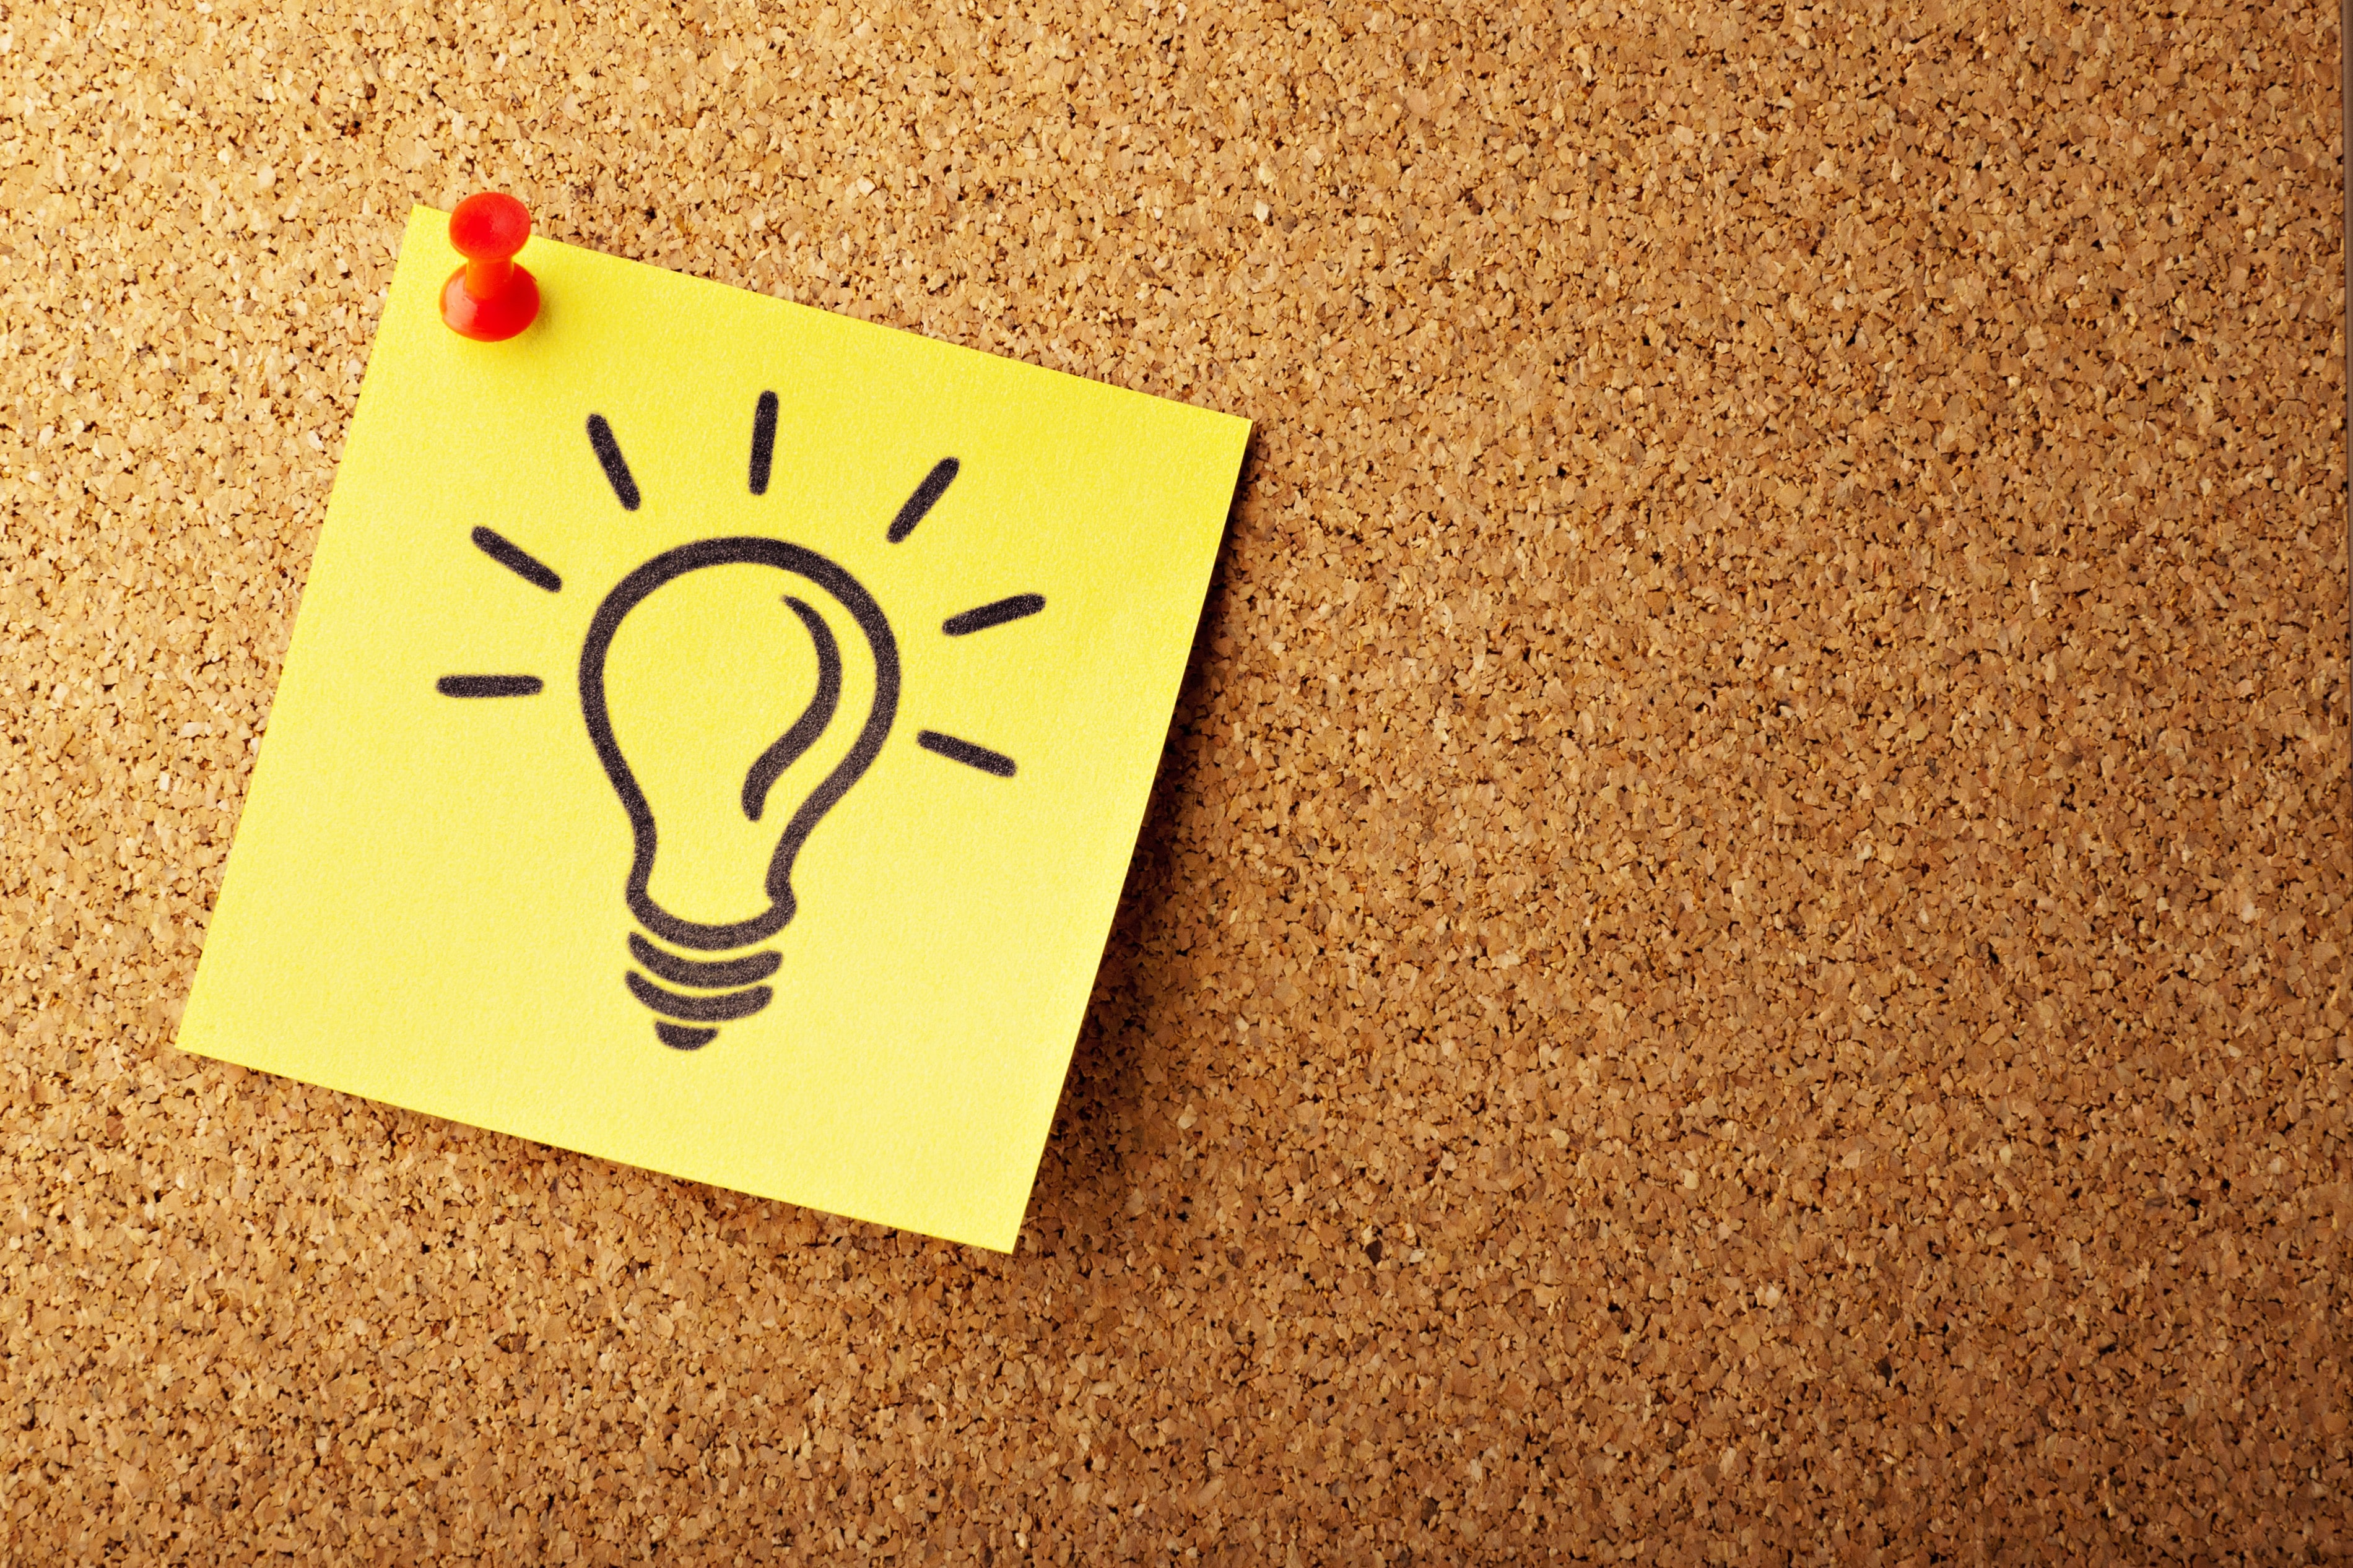 Got an idea? Here's how to pitch with confidence